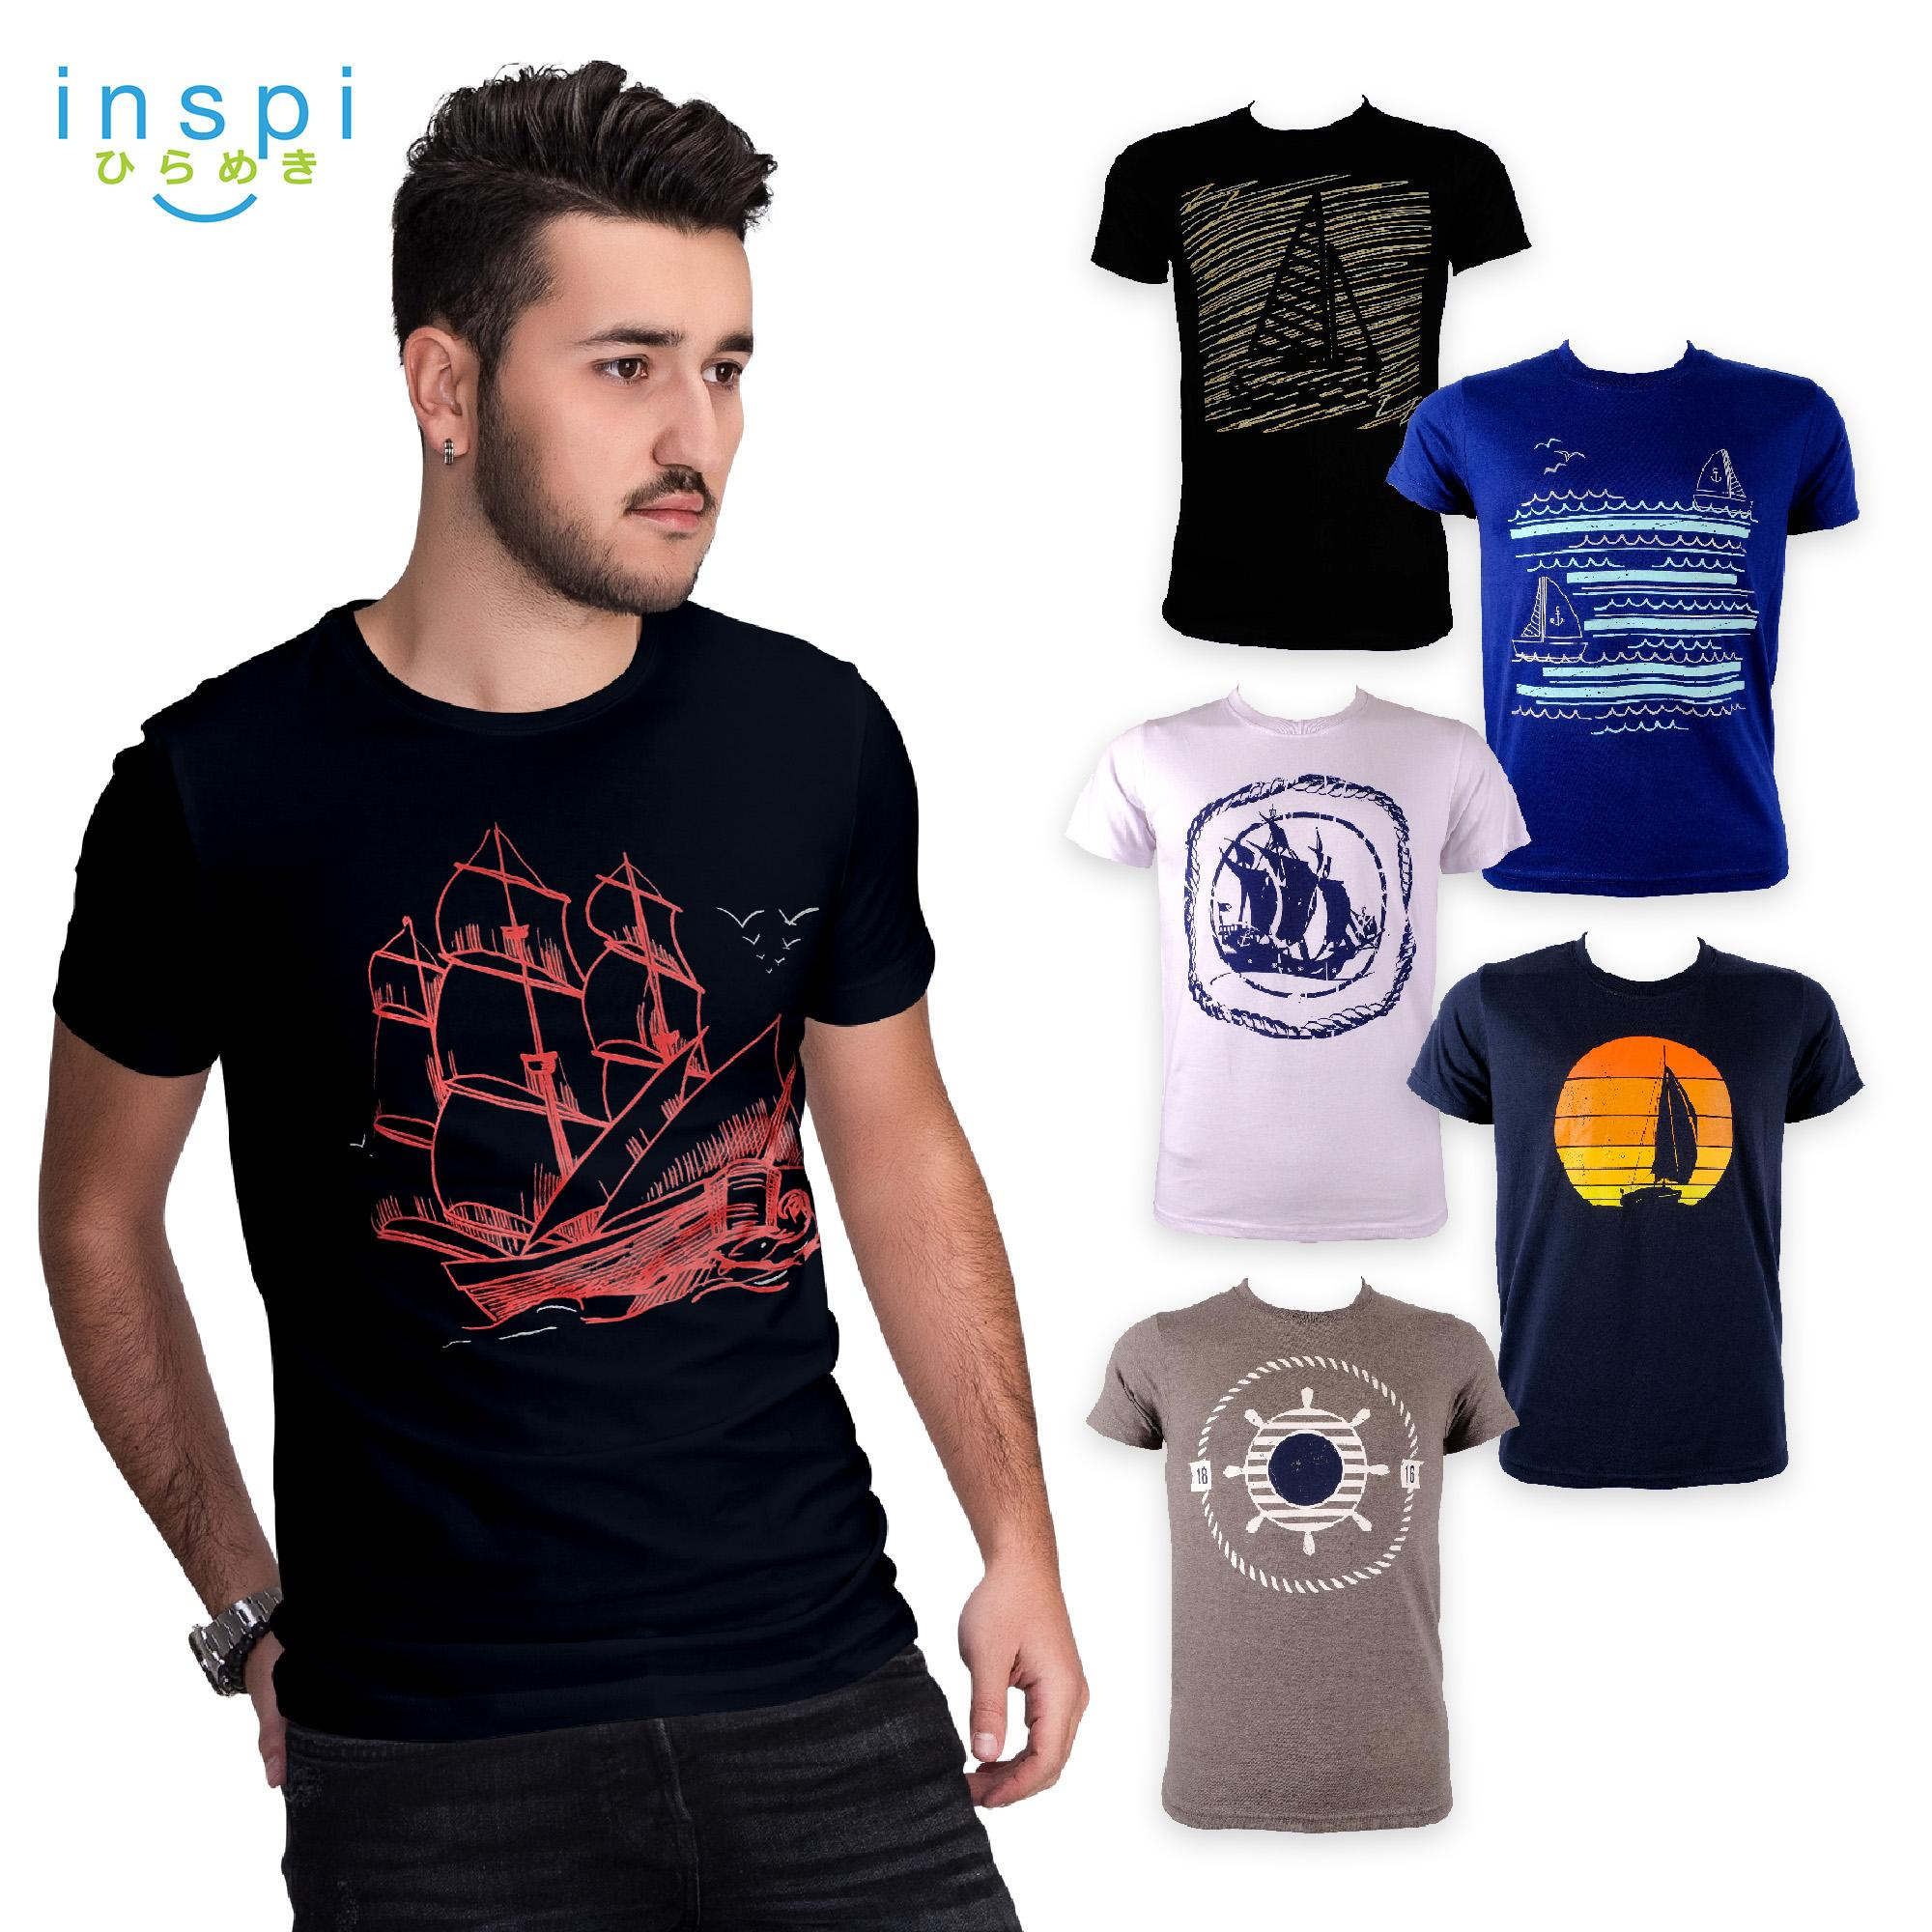 dd40ea0a1d98f INSPI Tees Sailing Collection tshirt printed graphic tee Mens t shirt shirts  for men tshirts sale